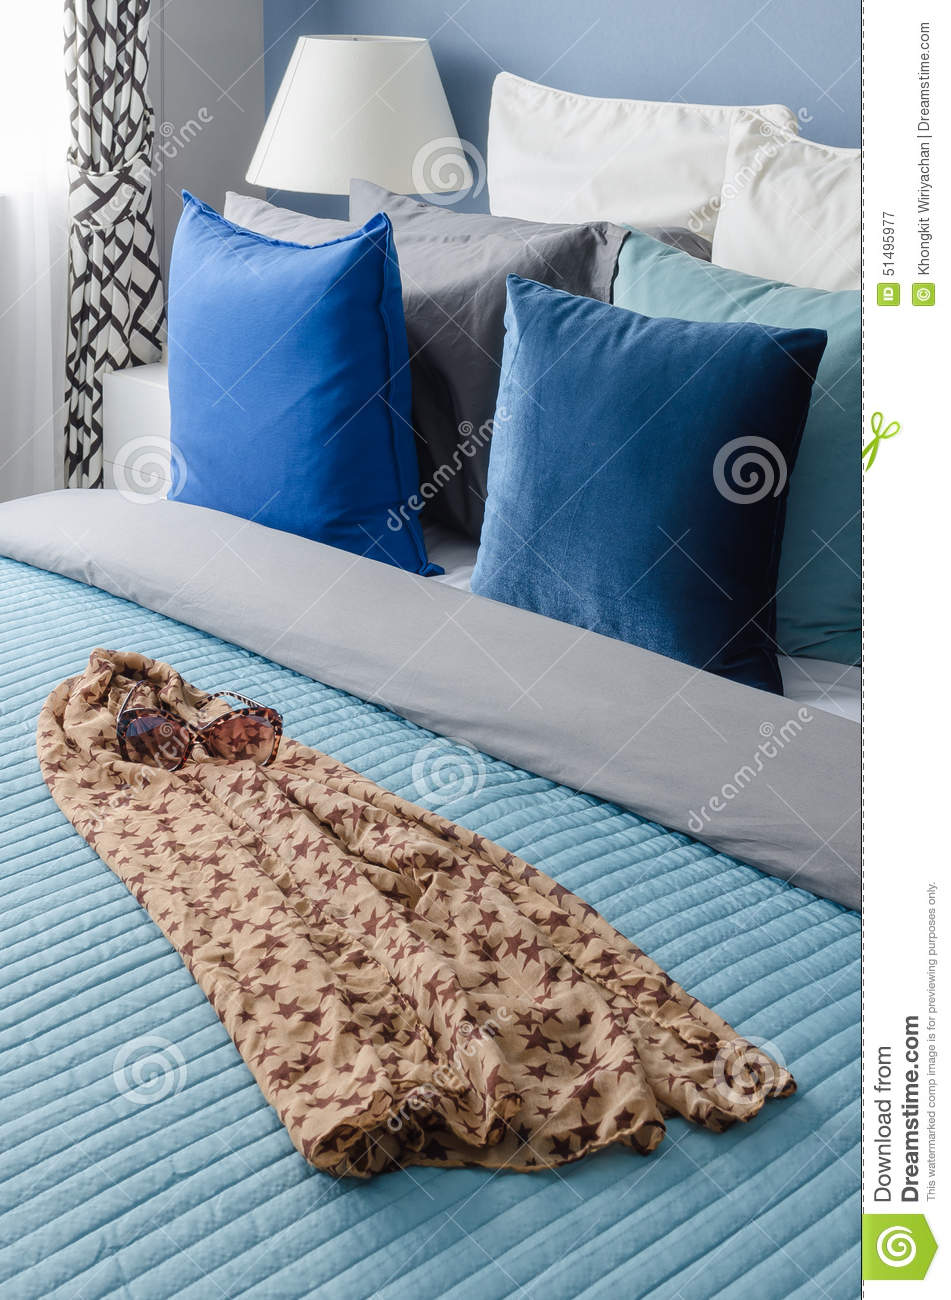 Blue Pillow On Bed With Glasses On Cloth In Modern Bedroom Stock Photo - Image: 51495977